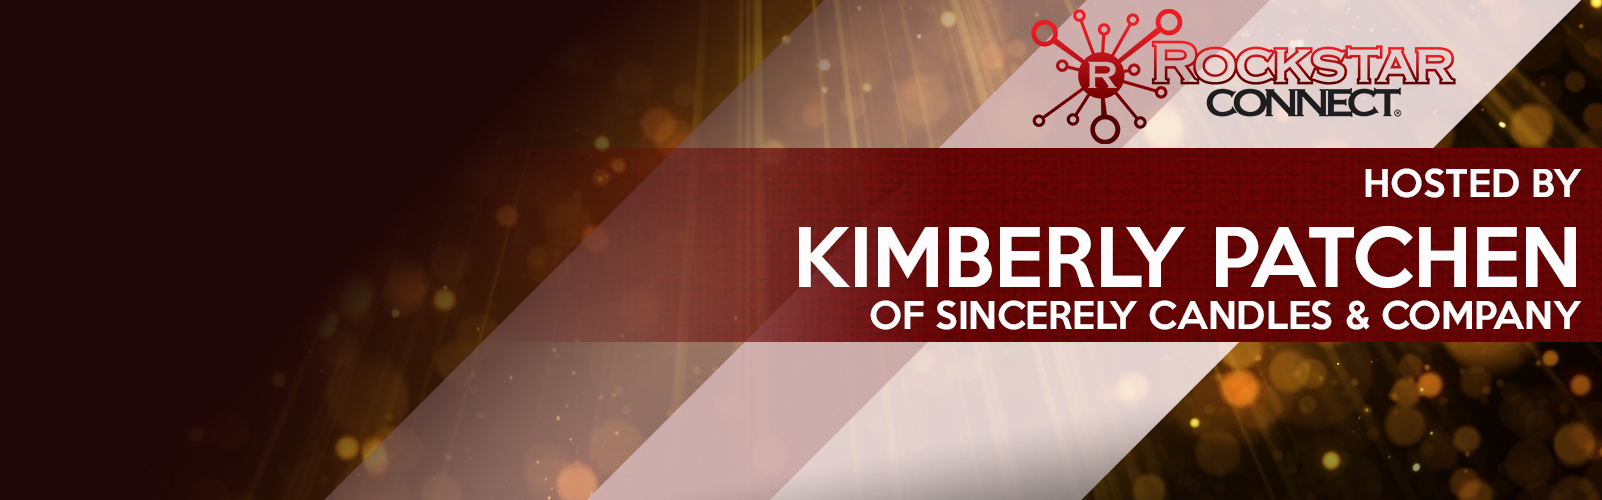 Kimberly Patchen of Sincerely Candles & Company